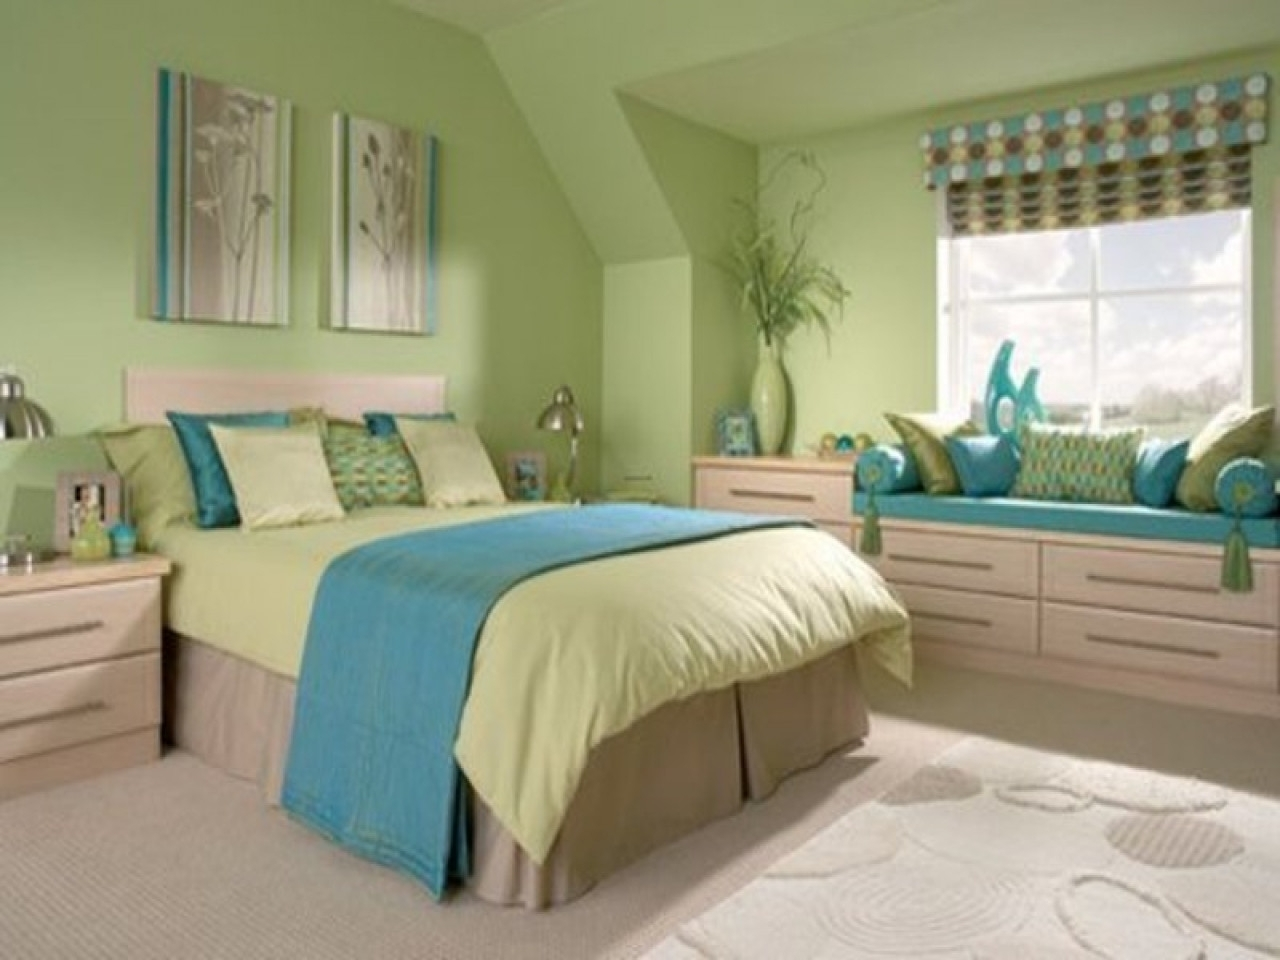 Bedroom Ideas Young Adult Woman — Randolph Indoor and Outdoor Design